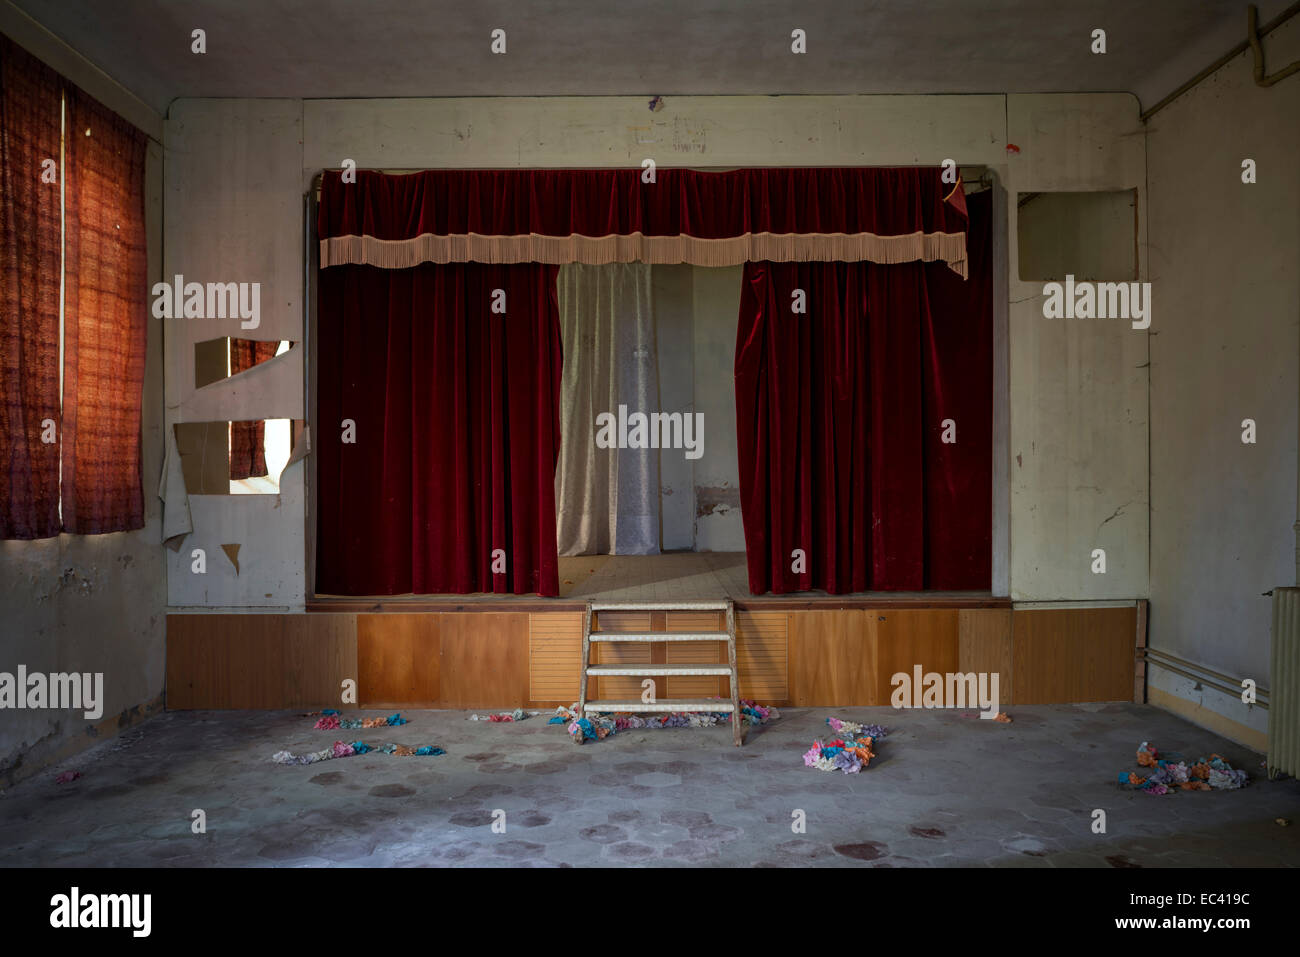 Stage of abandoned theater - Stock Image